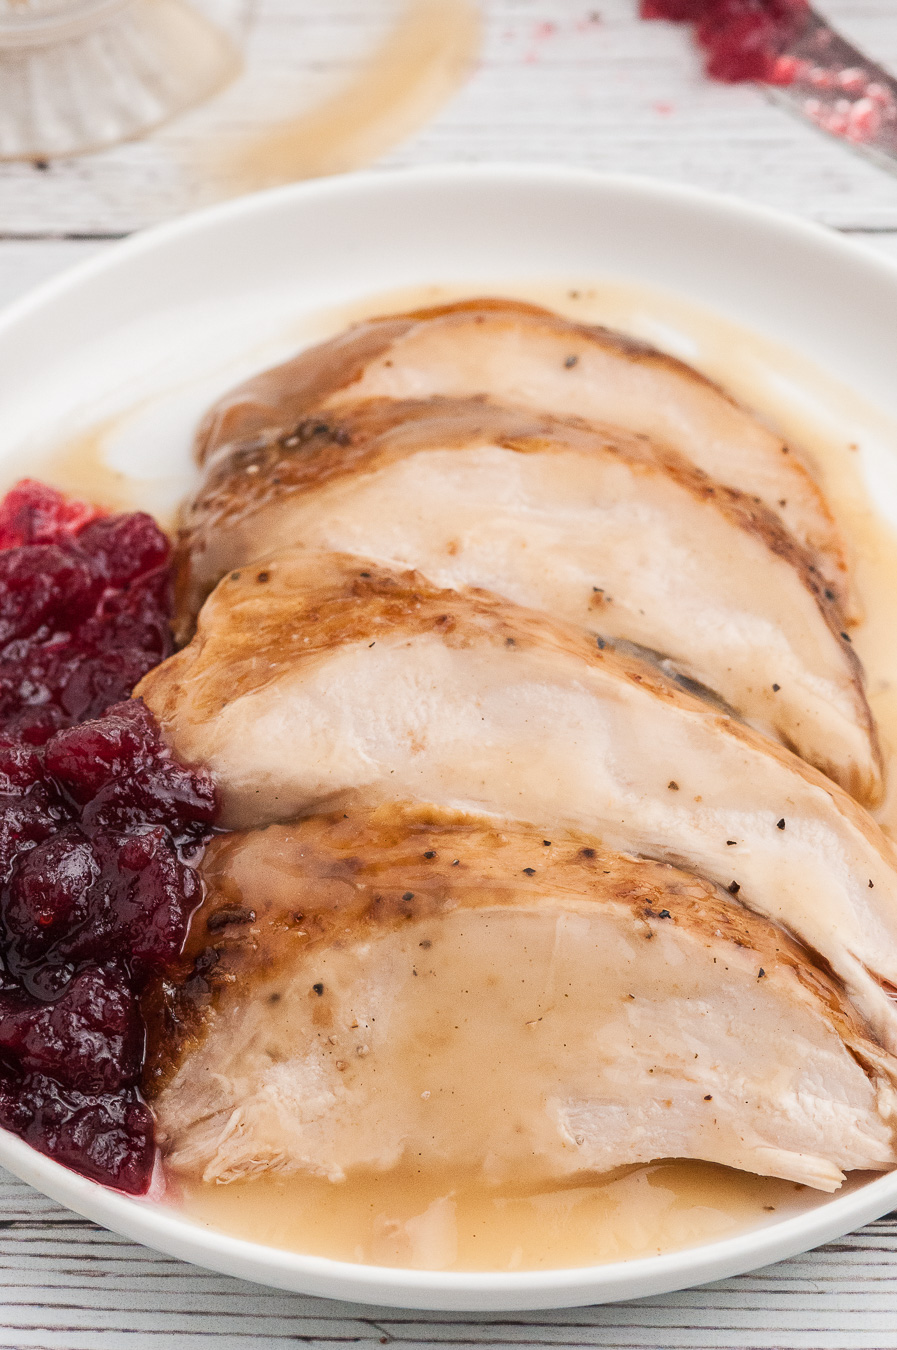 sliced turkey on a plate served with cranberry sauce